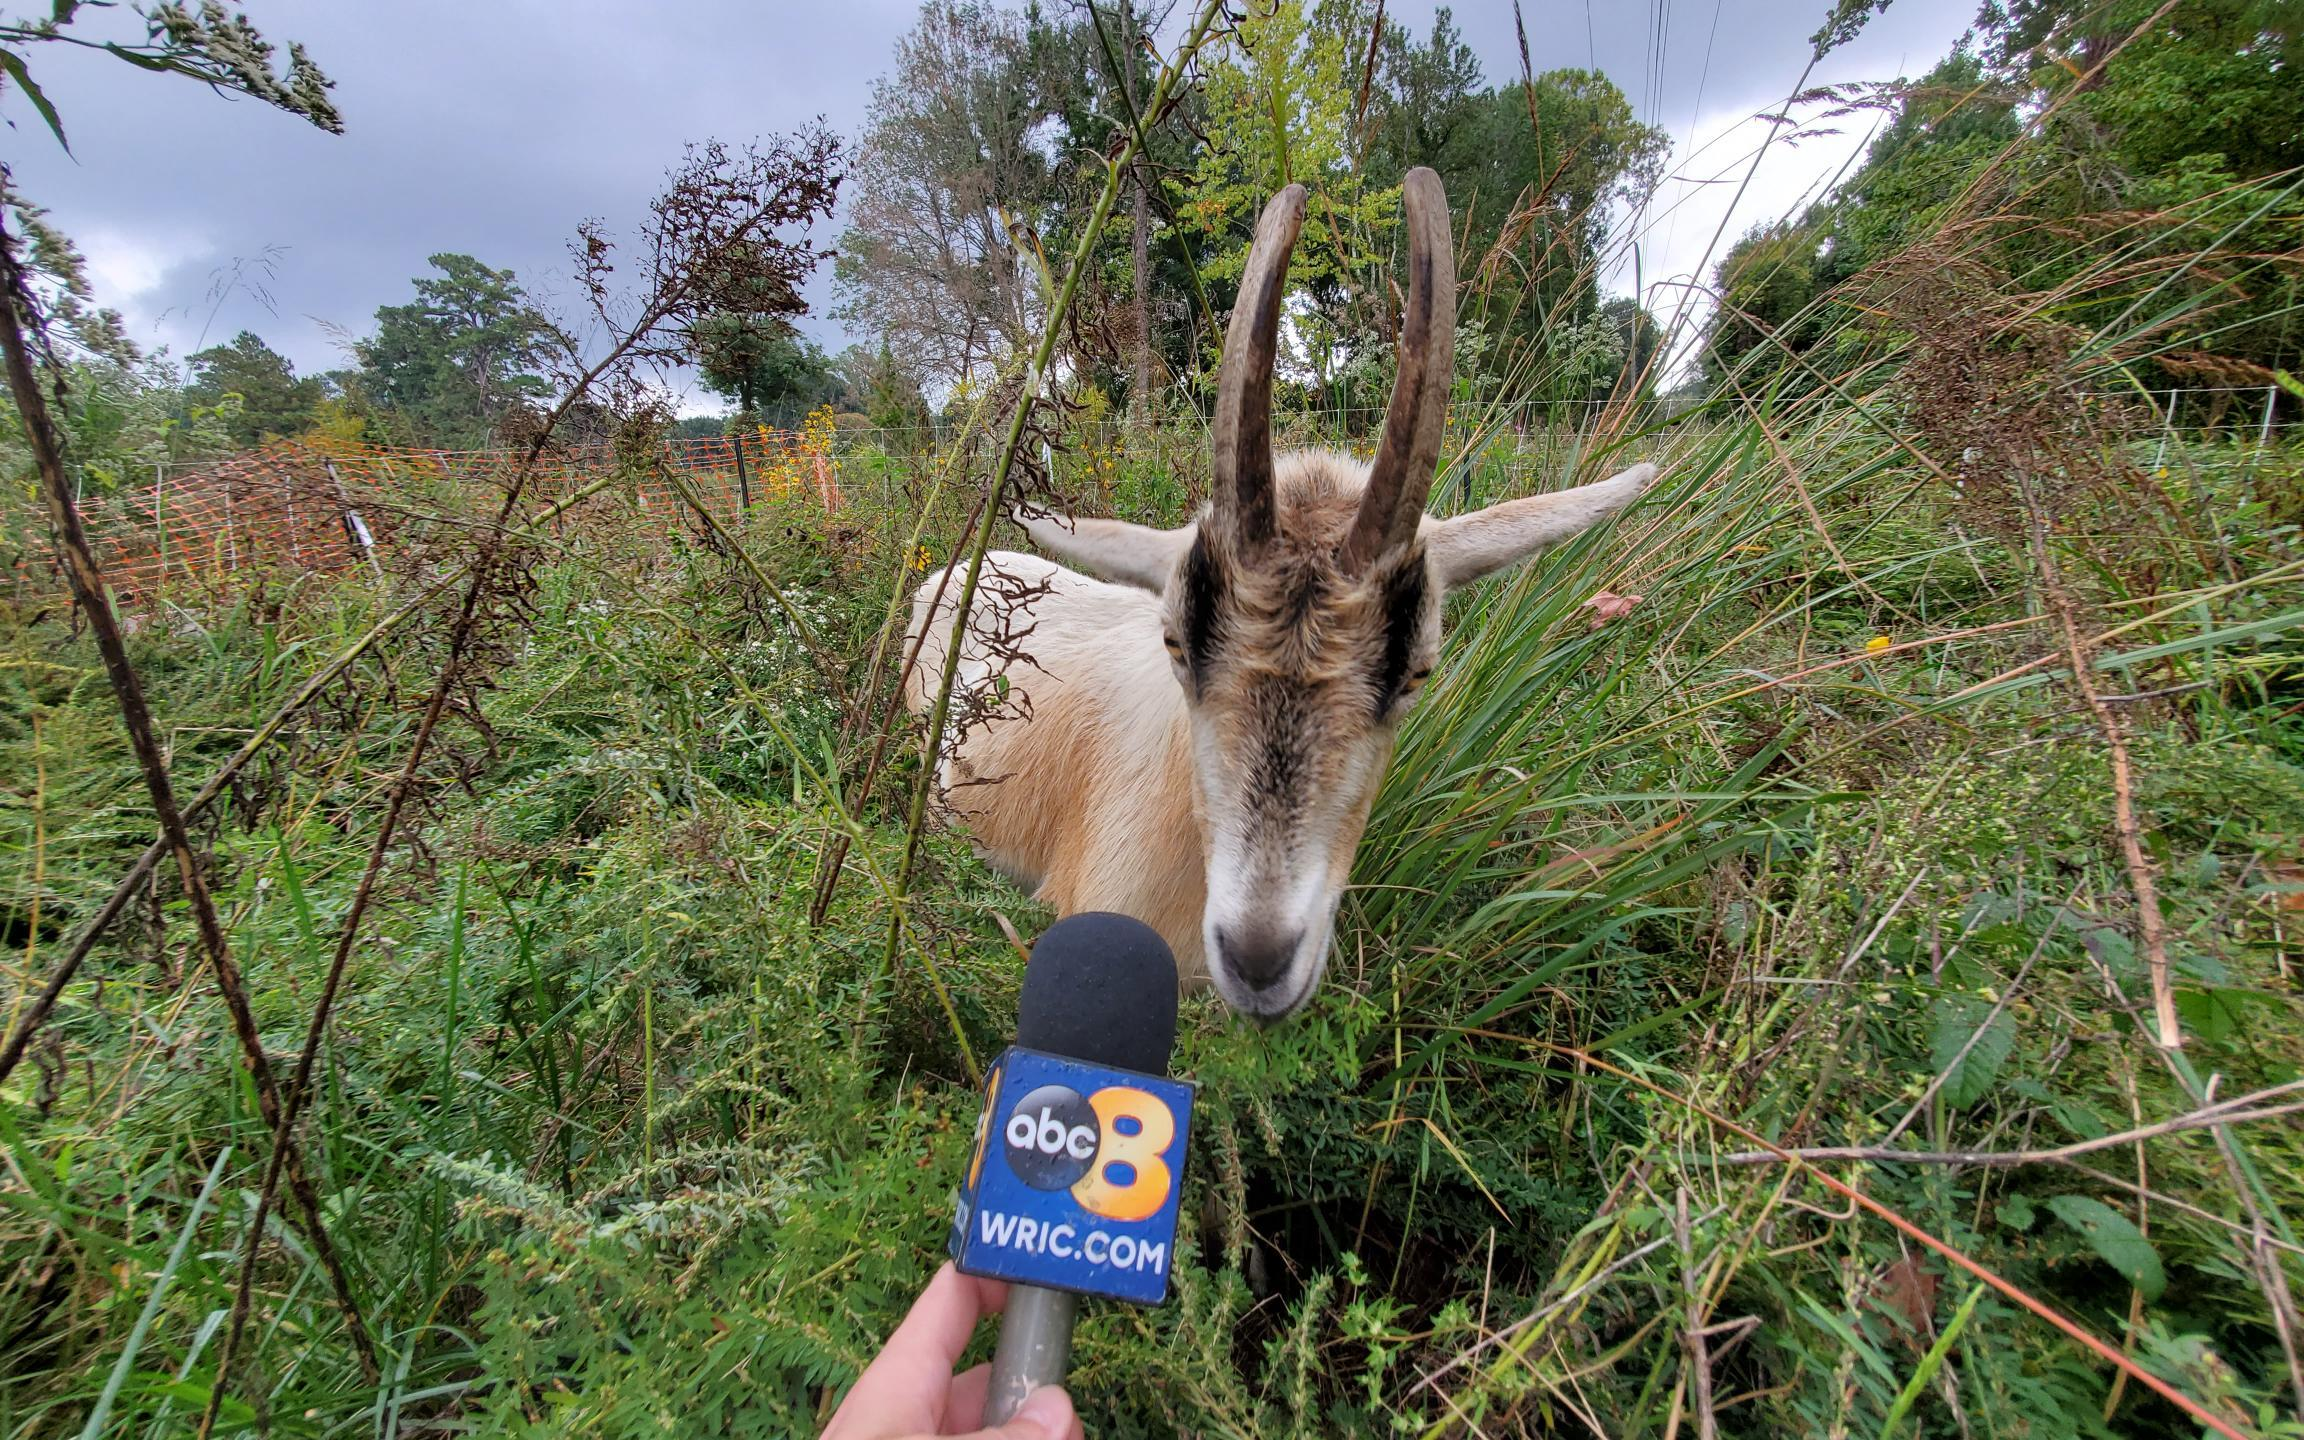 Goat at the University of Richmond getting an interview